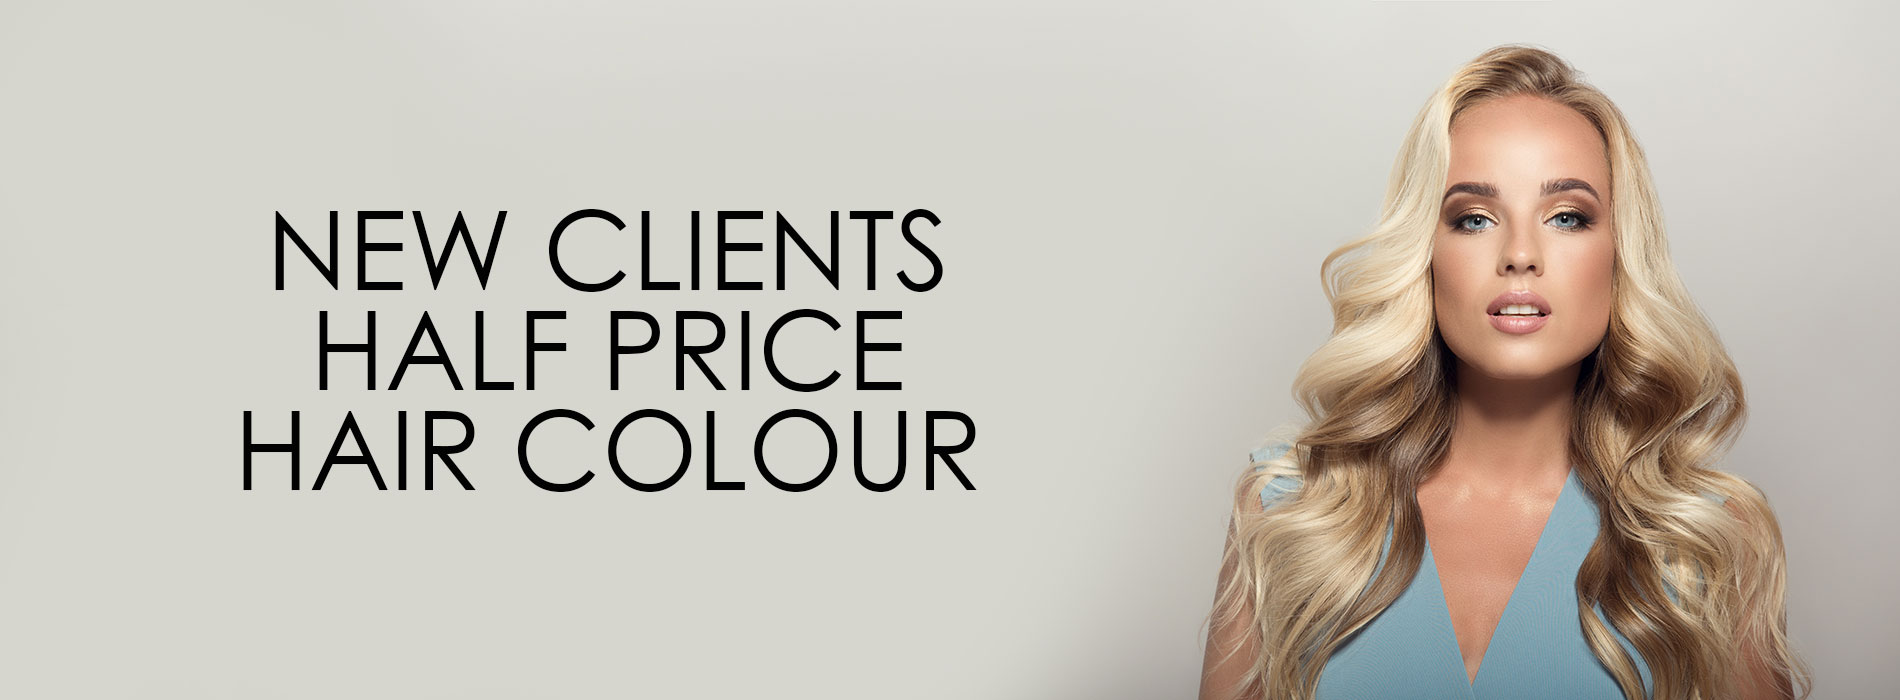 New Clients Half Price Hair Colour Edlesborough Dunstable Hairdressers